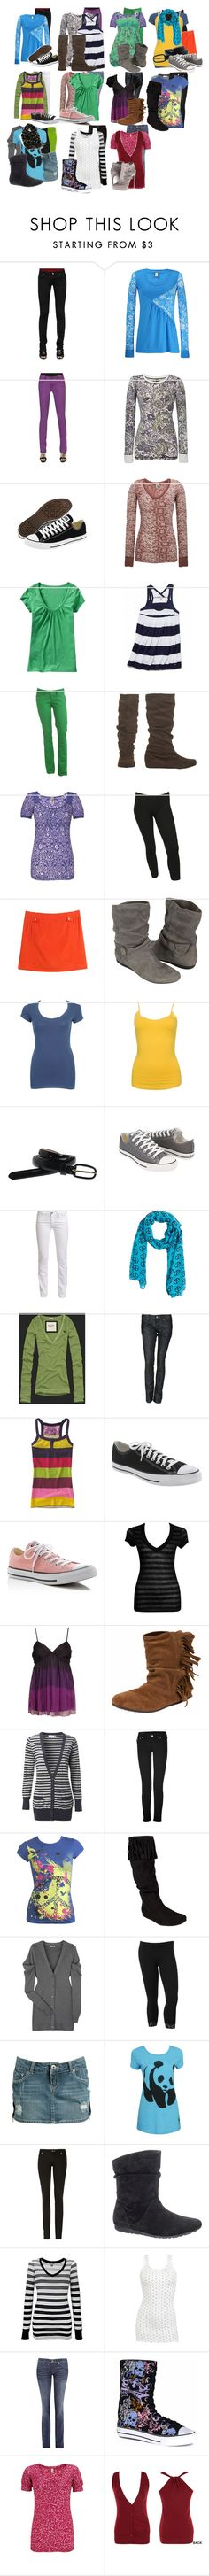 """""""The Vampire Diaries: Malia Gilbert"""" by grandmasfood ❤ liked on Polyvore featuring Forever 21, BKE, Converse, Old Navy, Victoria's Secret, Wet Seal, J.Crew, Acne Studios, Abercrombie & Fitch and Divine Rights of Denim"""